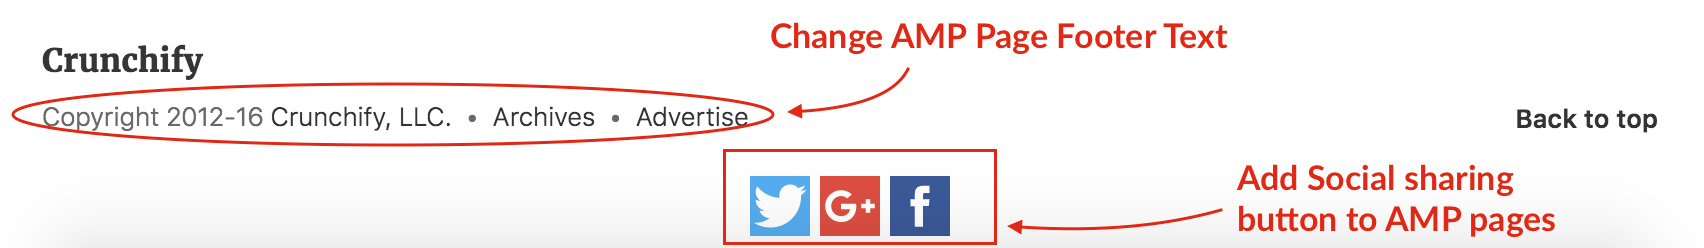 crunchify-amp-footer-and-social-sharing-buttons